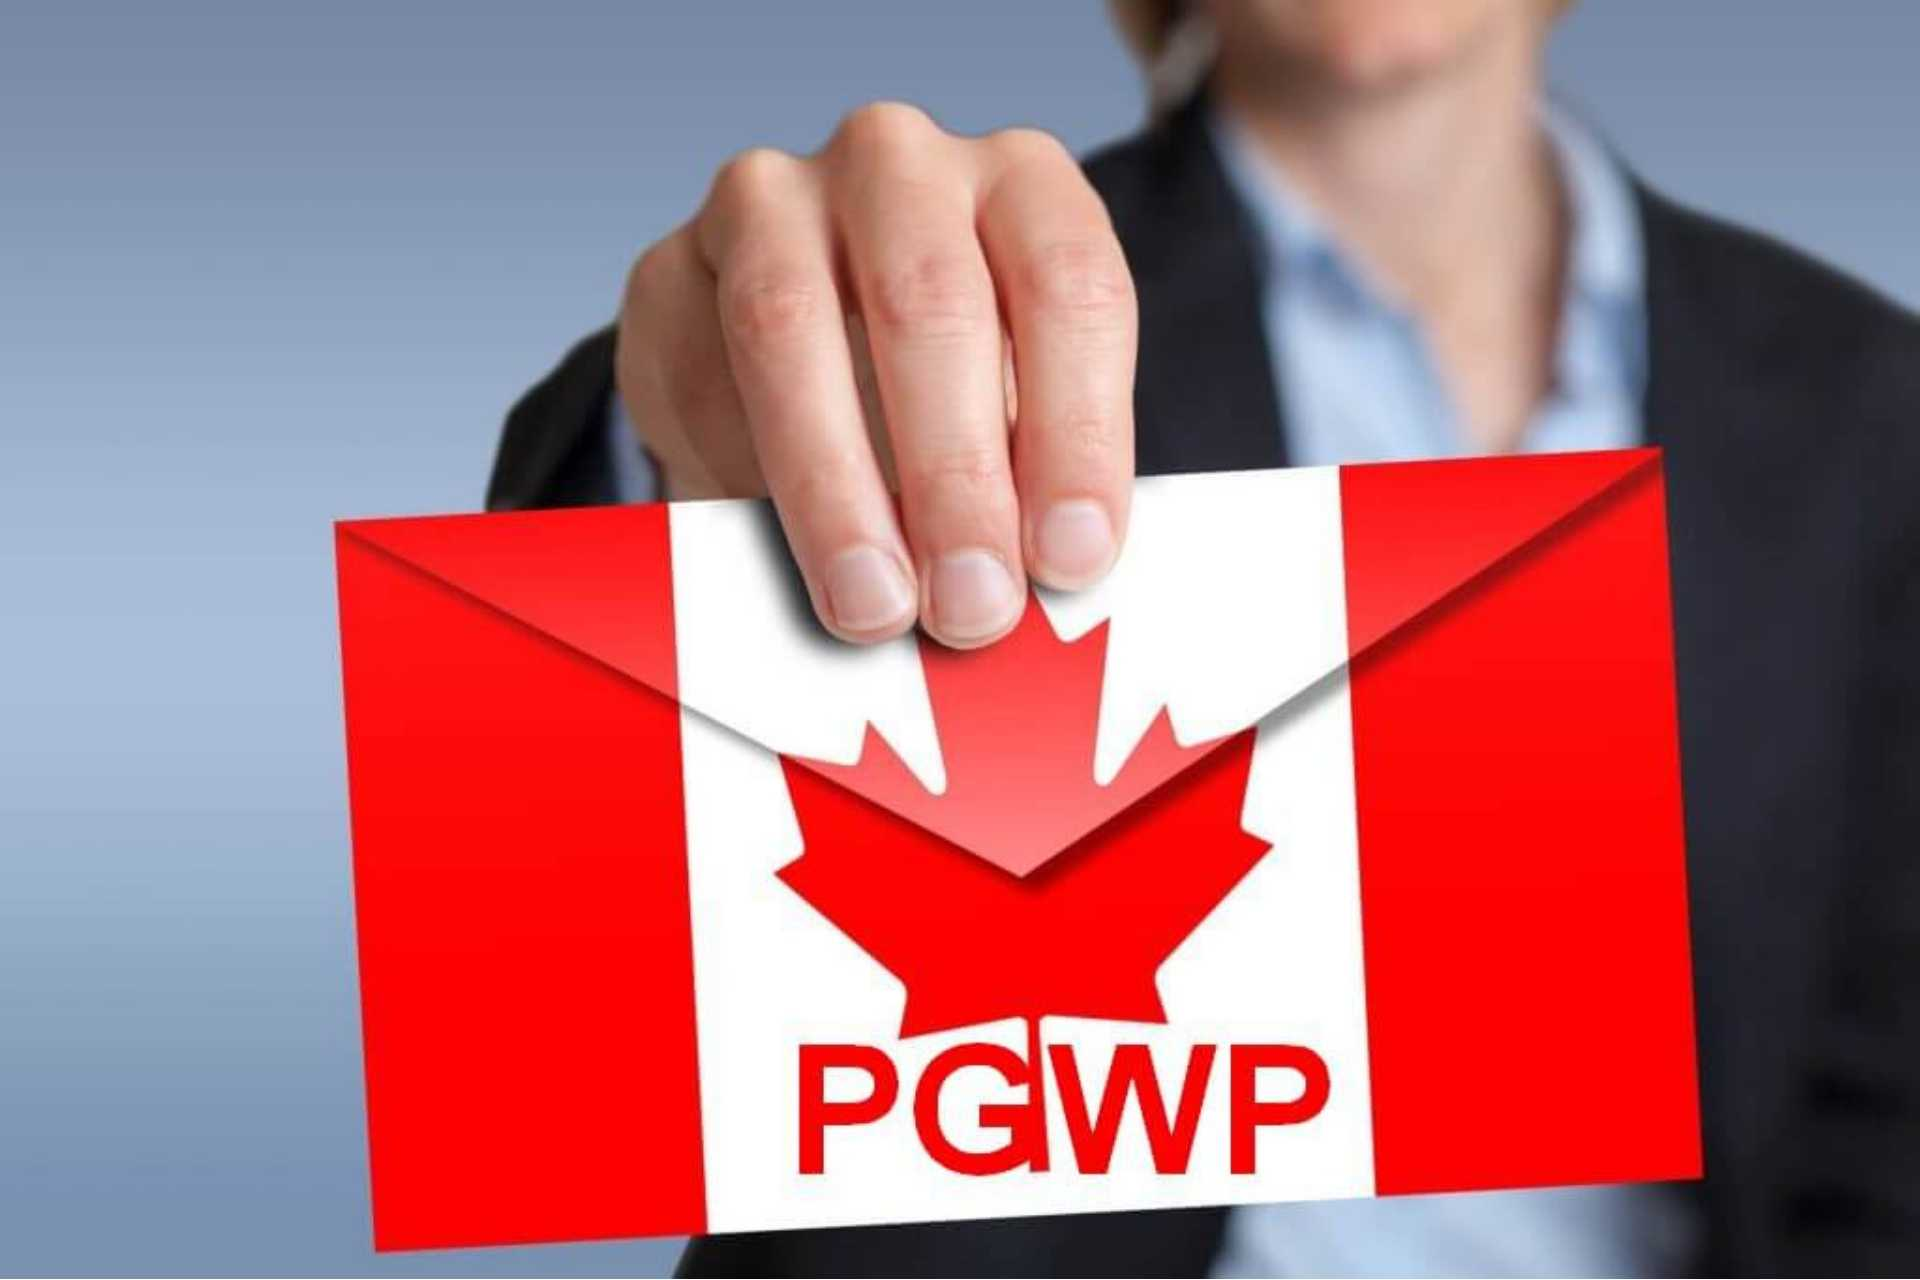 post graduate work permit with CW